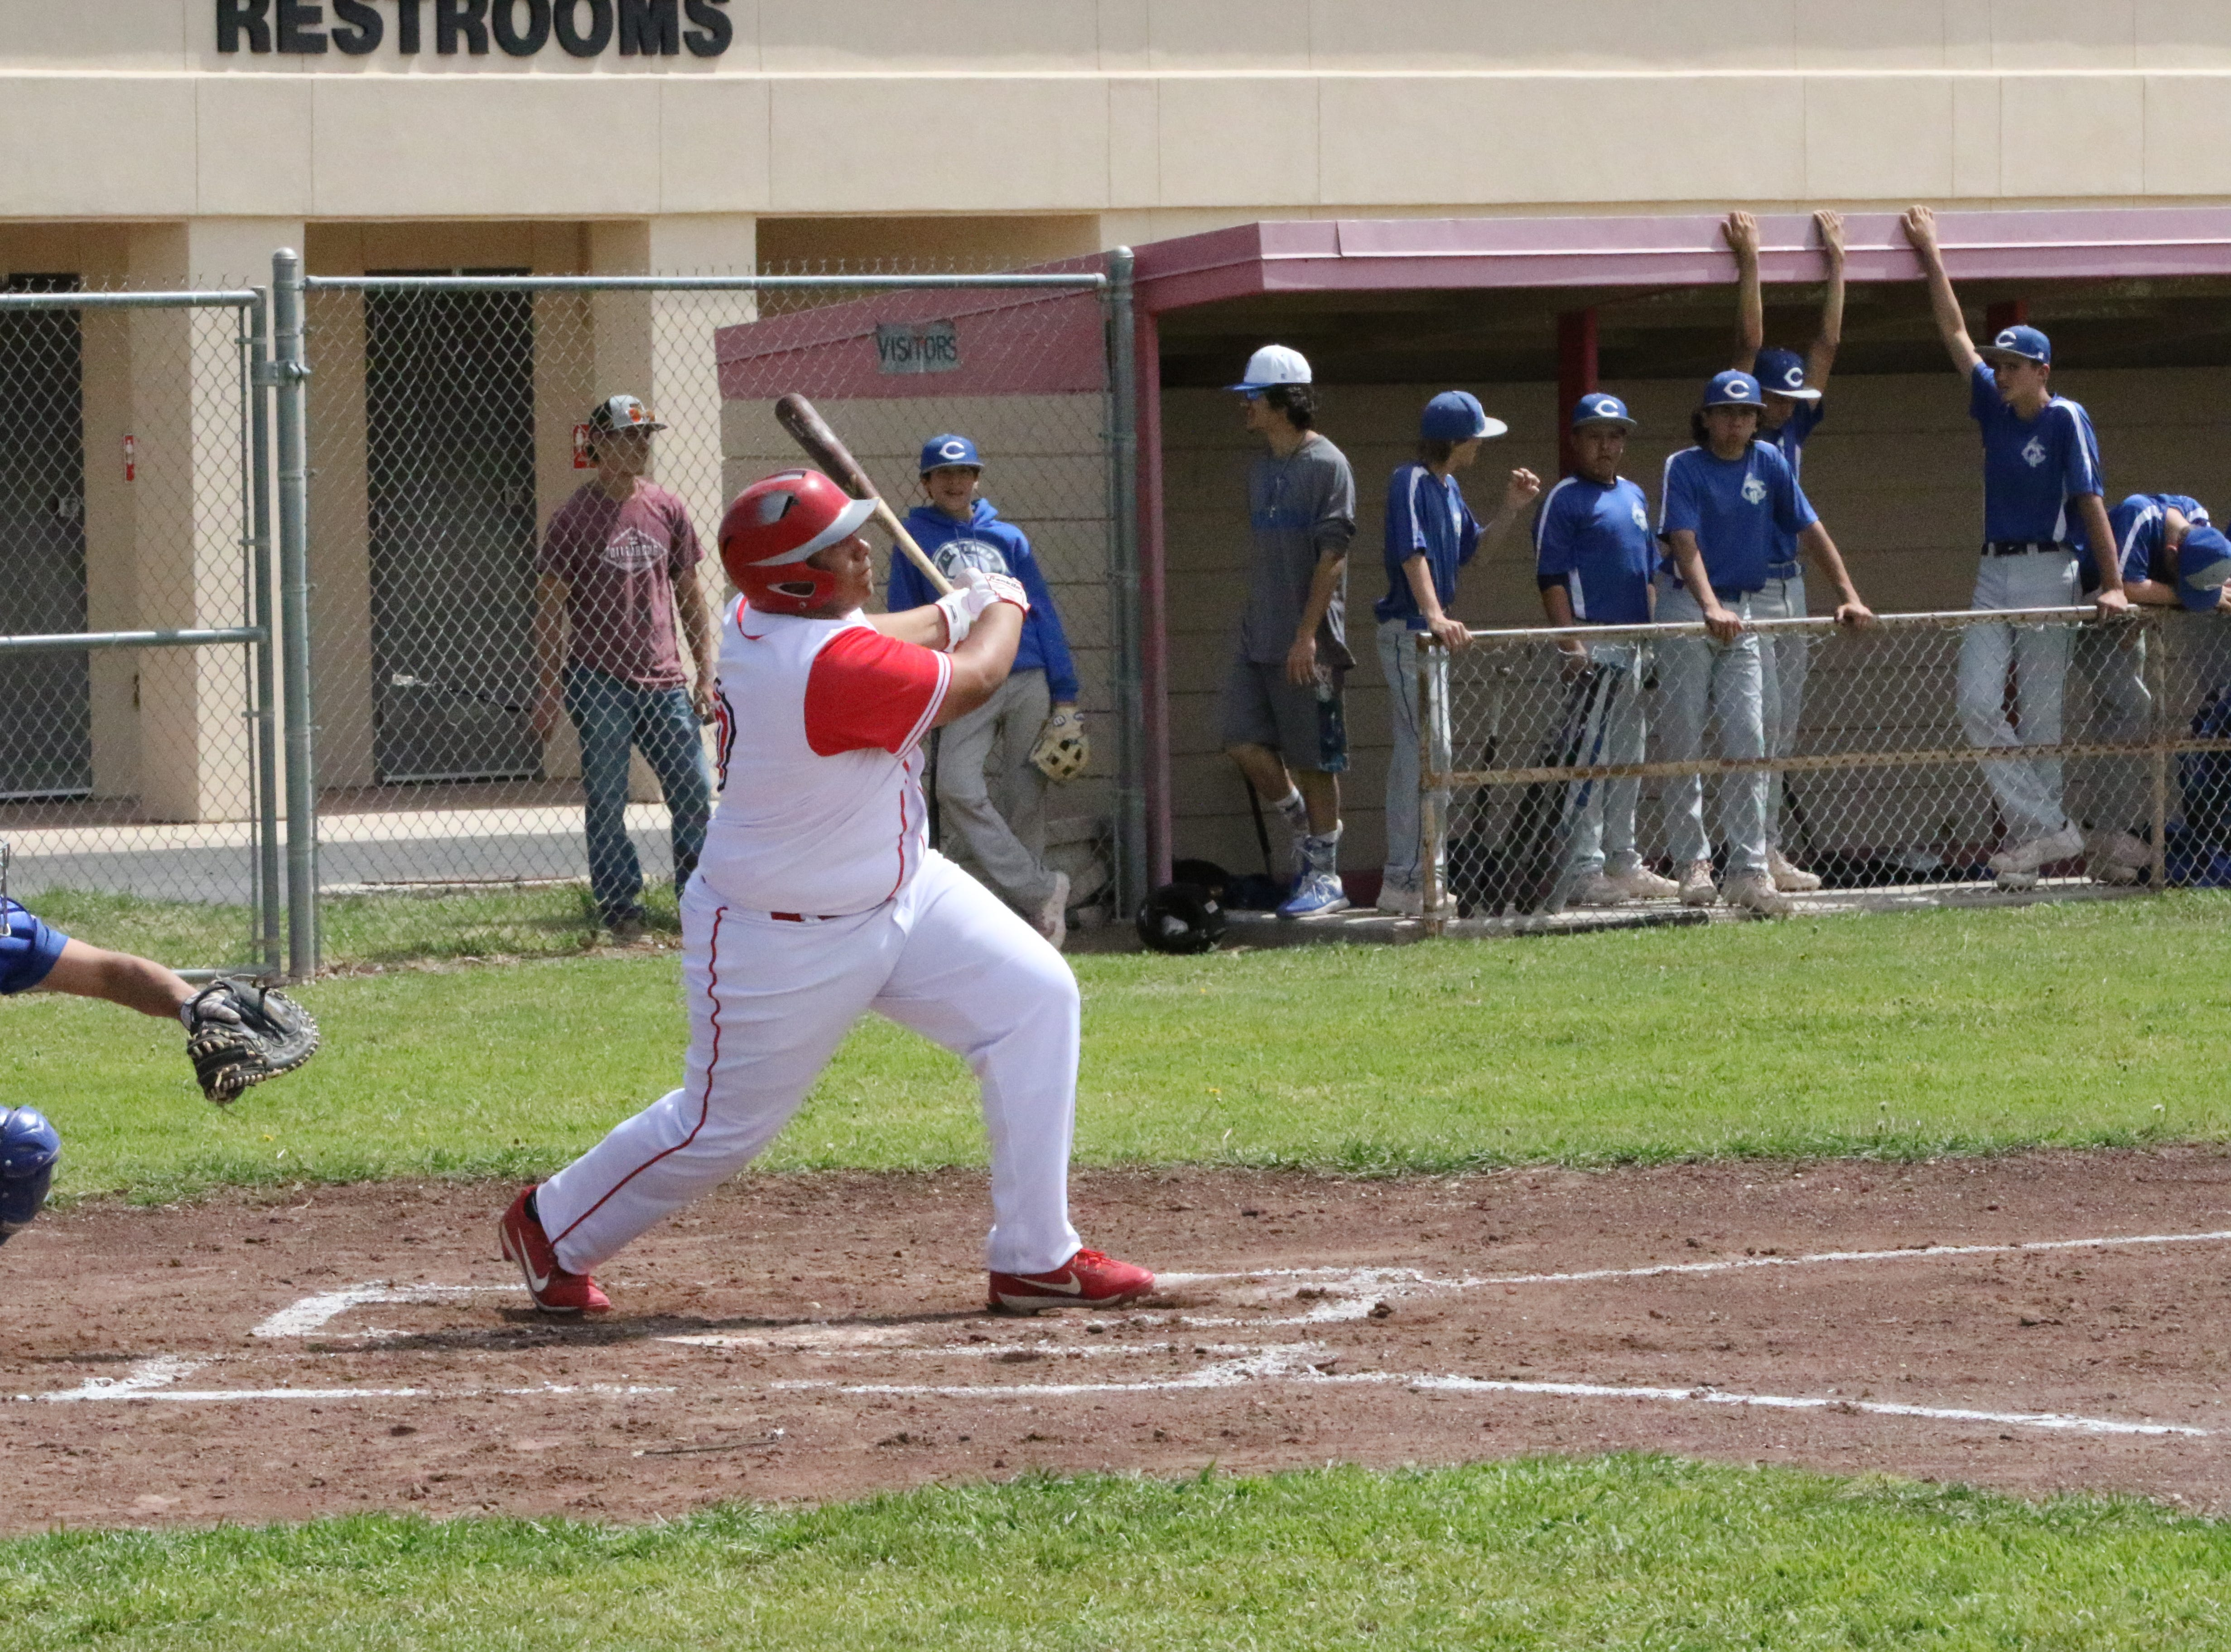 Highlights of the Loving doubleheader with Carlsbad's C team on April 6, 2019.